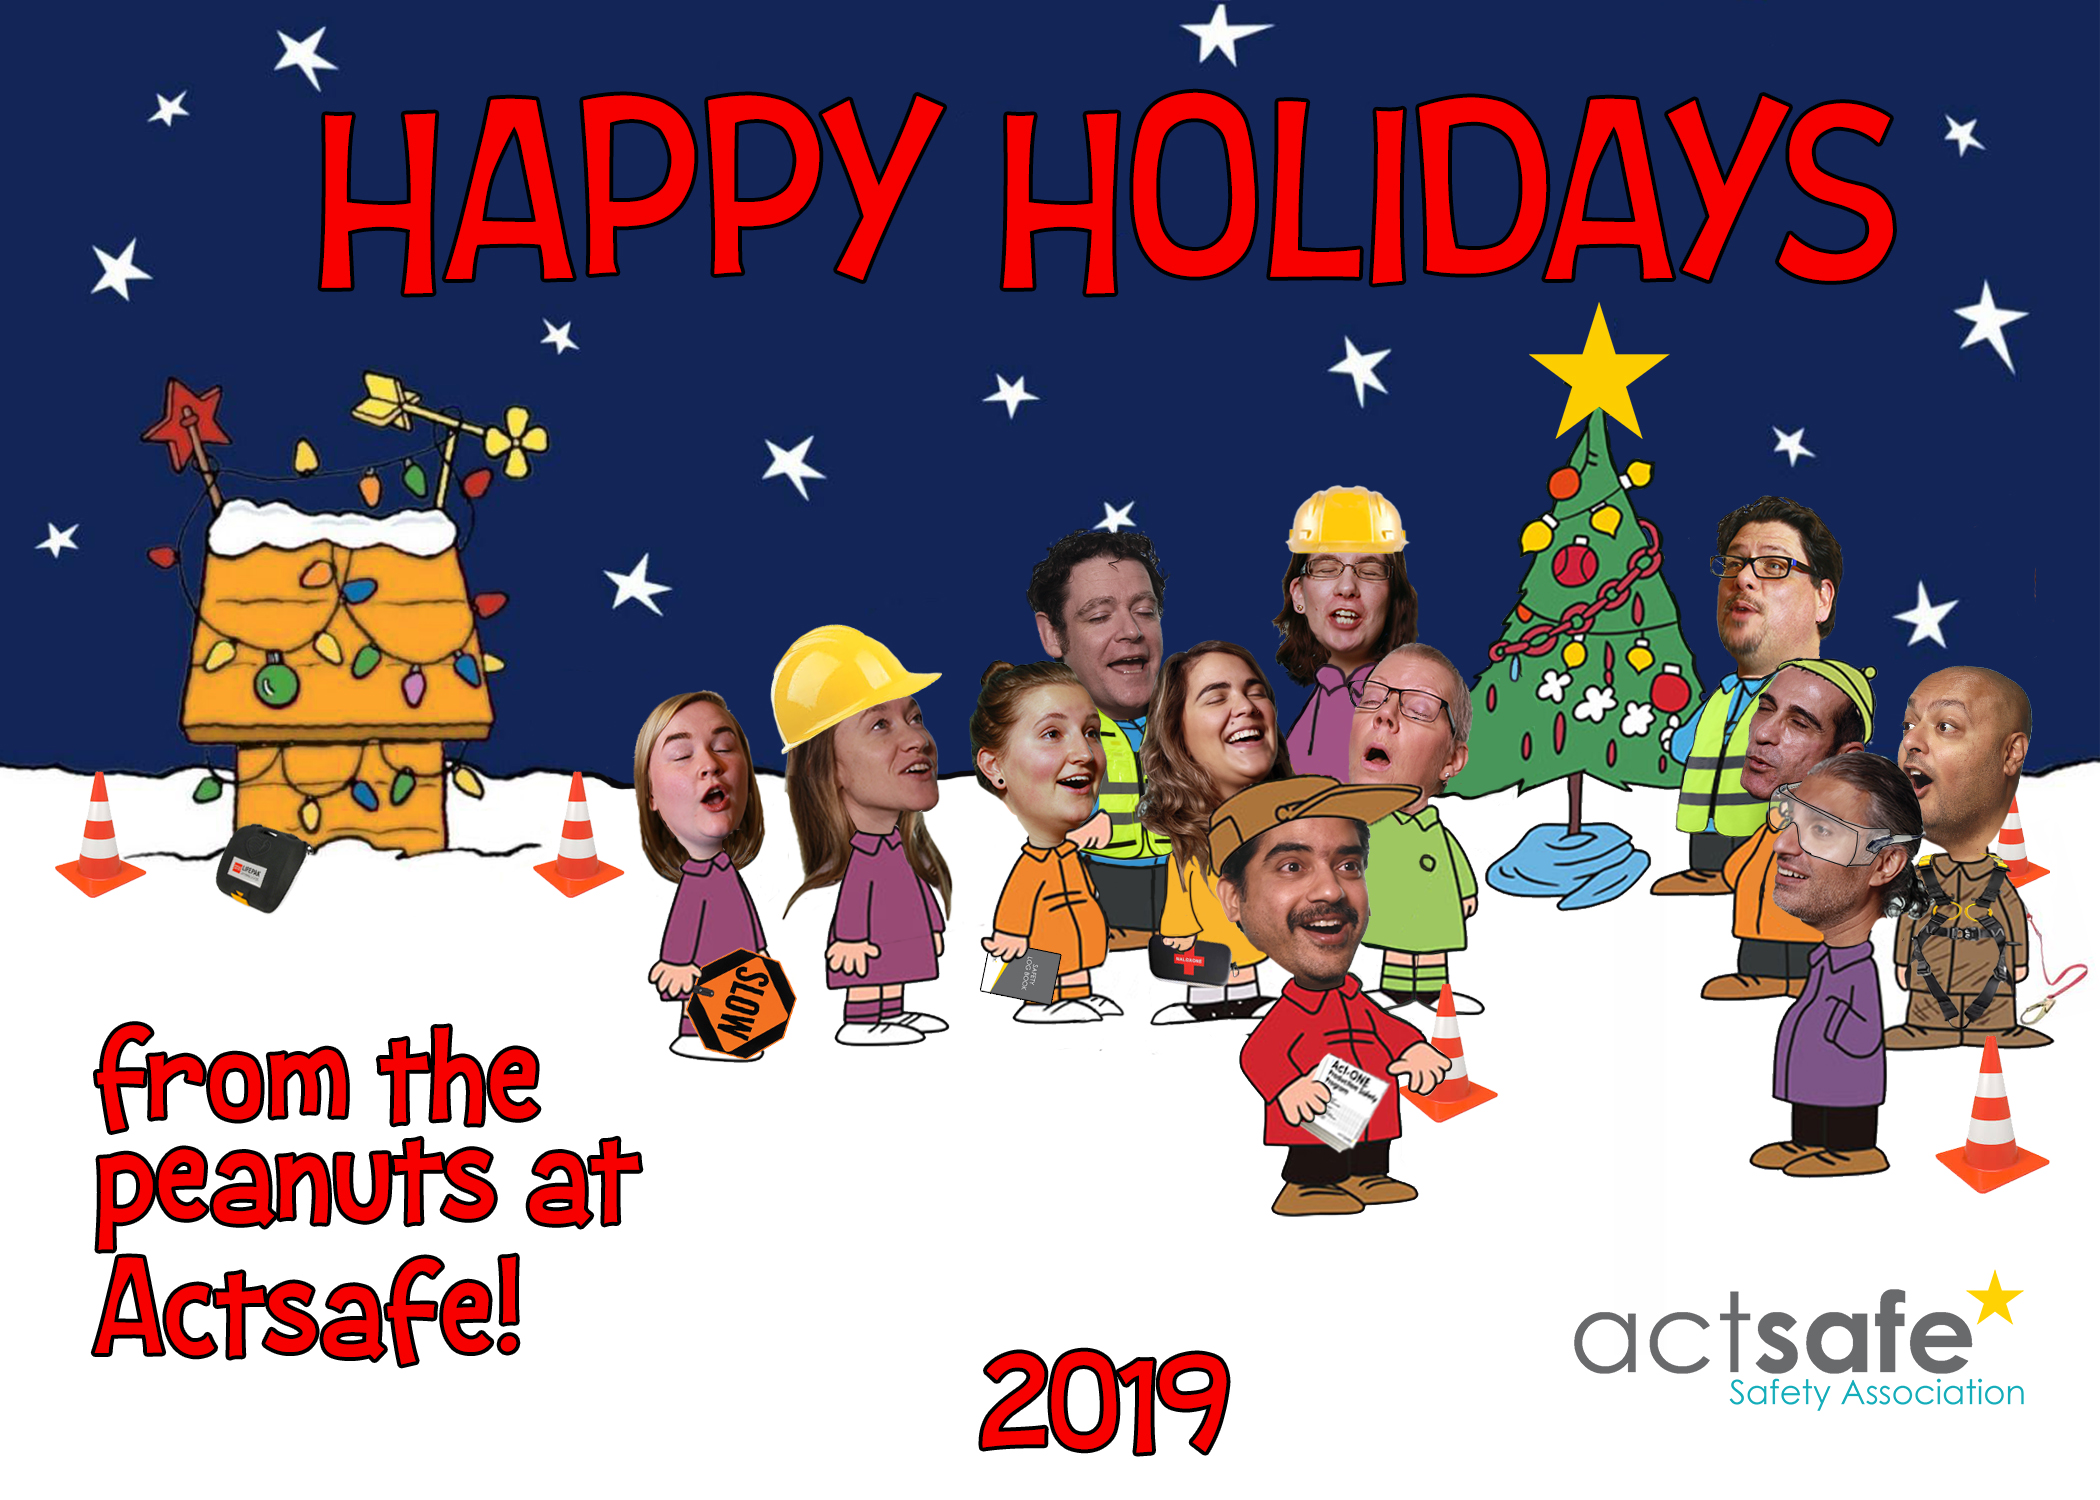 Actsafe Christmas Card 2019